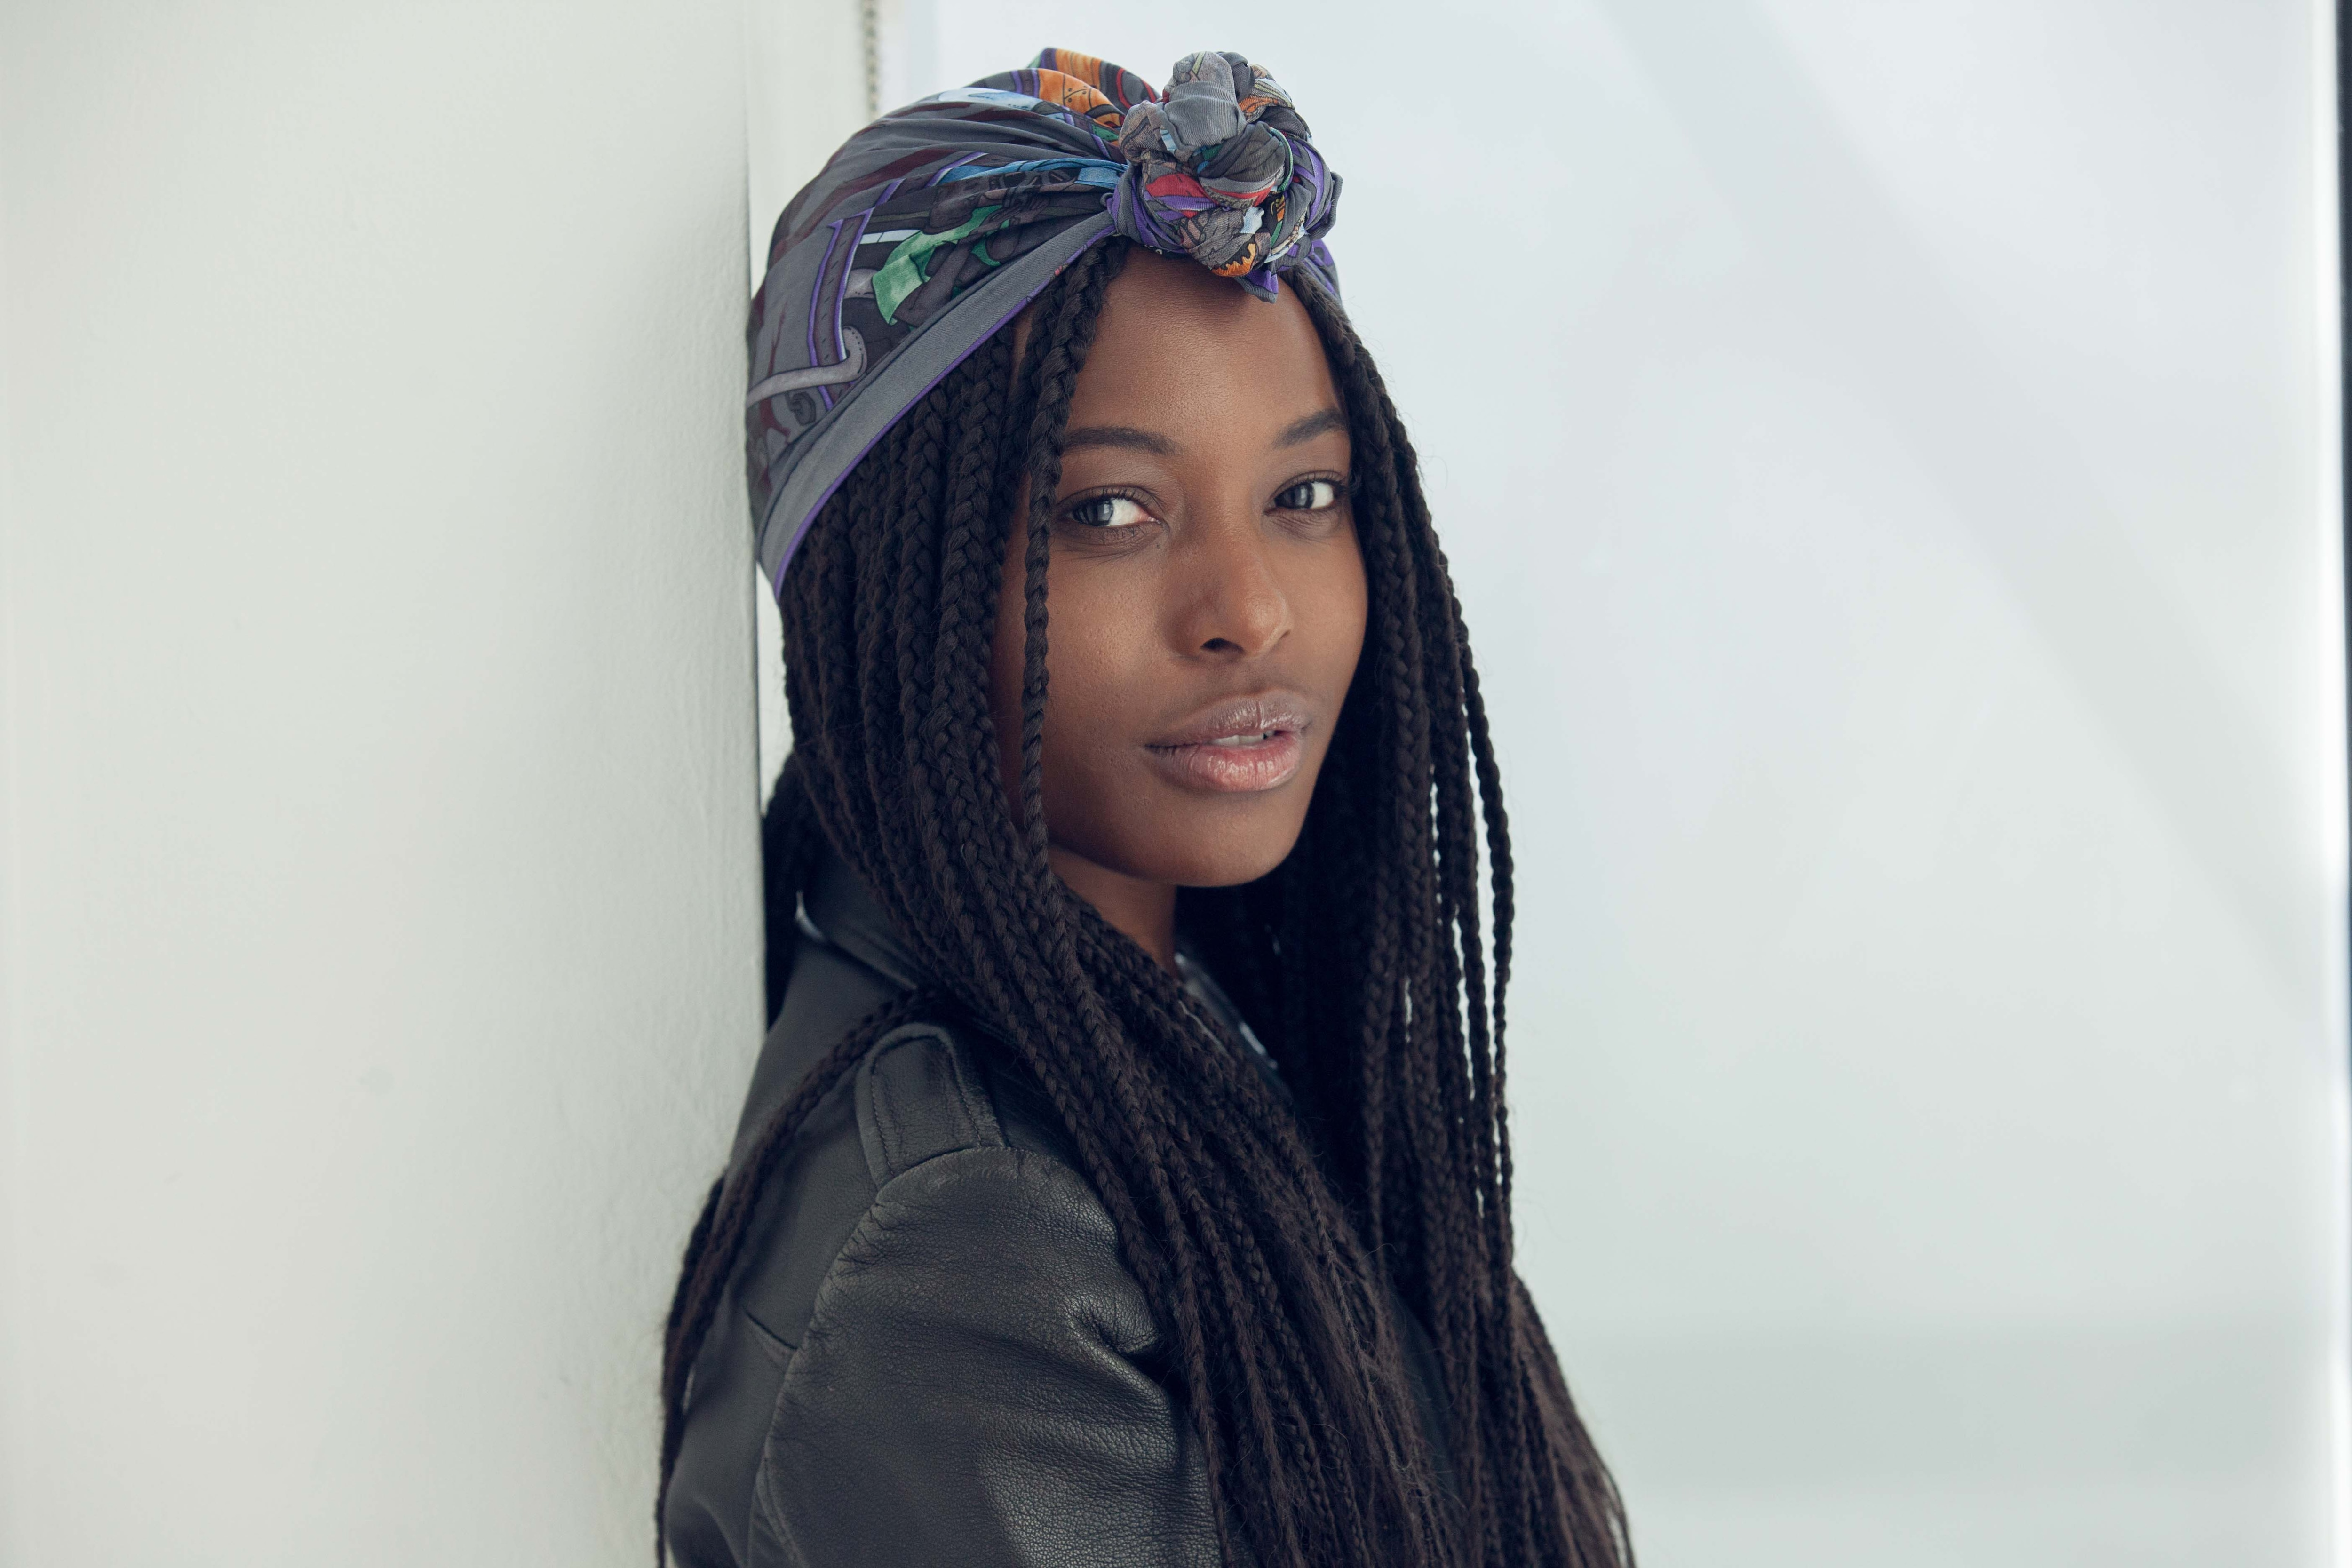 box braids: young black woman with box braids wearing a patterned headscraf